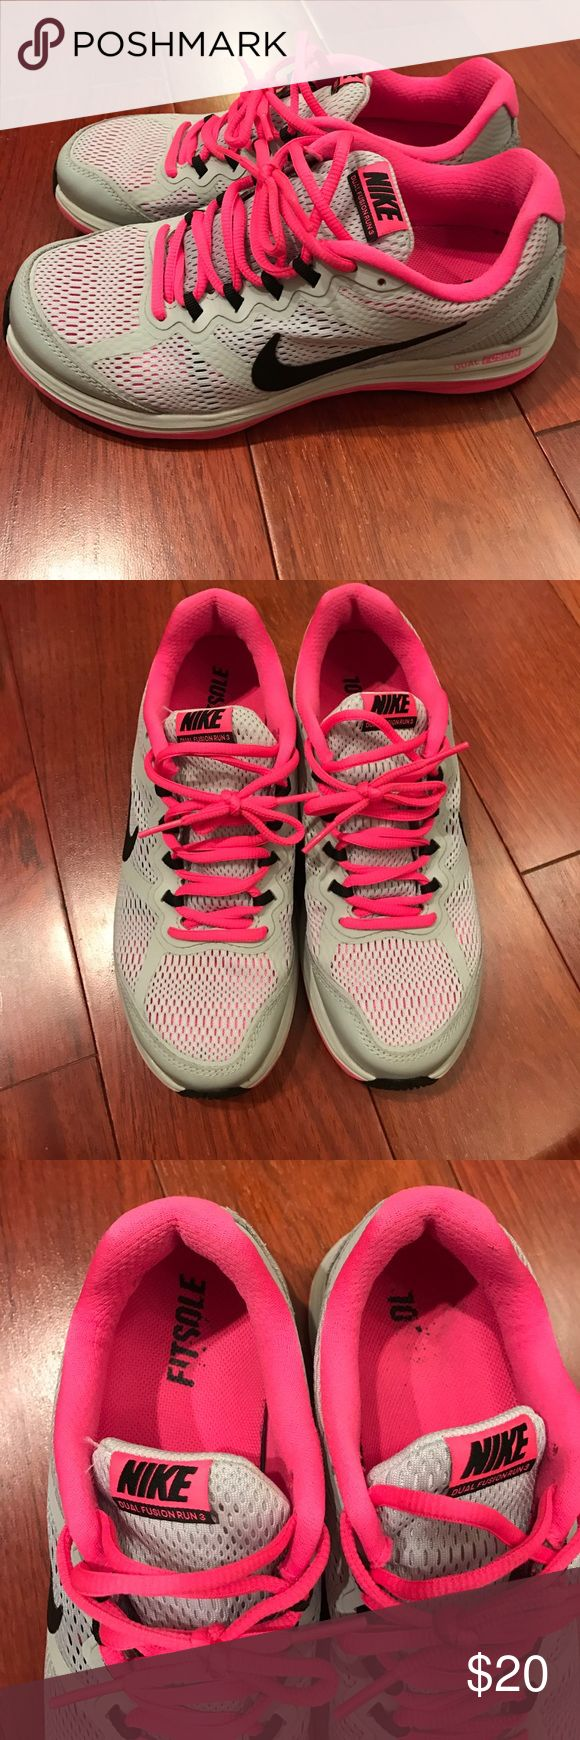 Nike Dual Fusion Run 3 Sneakers Good condition Nike Dual Fusion Run 3 size 7. These sneakers have been gently worn at inside gyms only. They are very light grey, hot pink, and black. Nike Shoes Sneakers